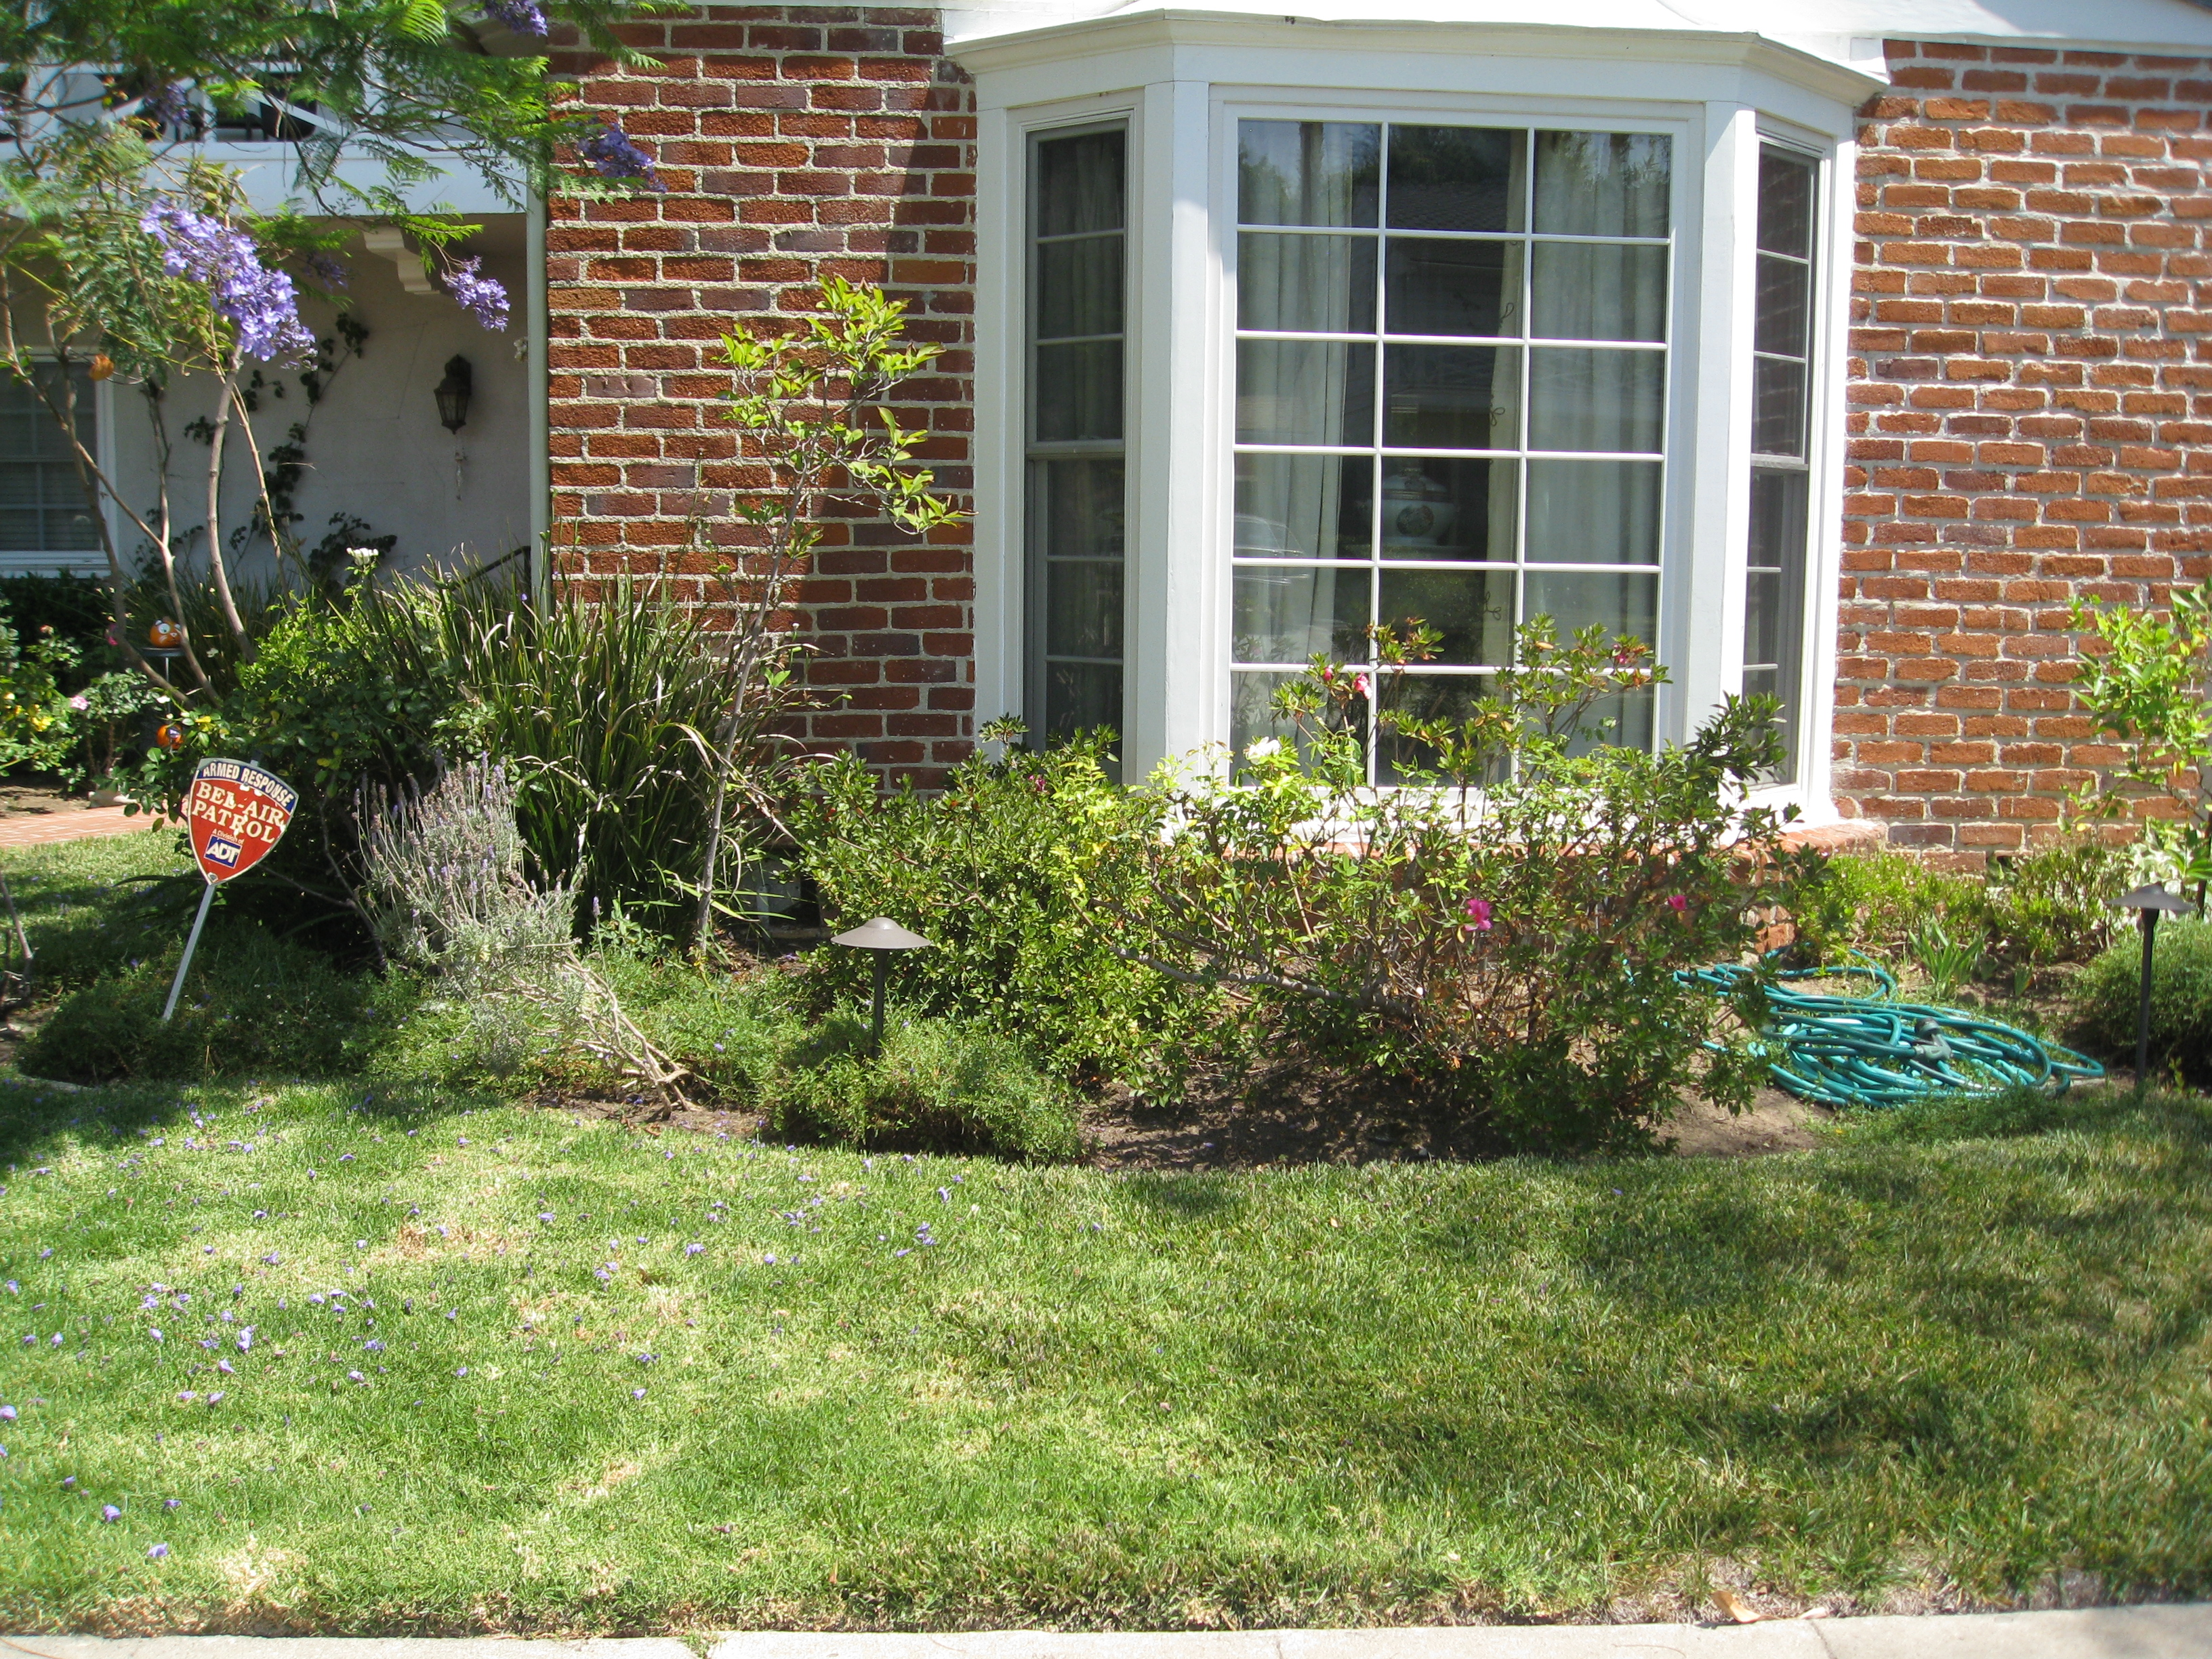 The new home of a mini-orchard and bioswale to capture and sink water from a nearby downspout.